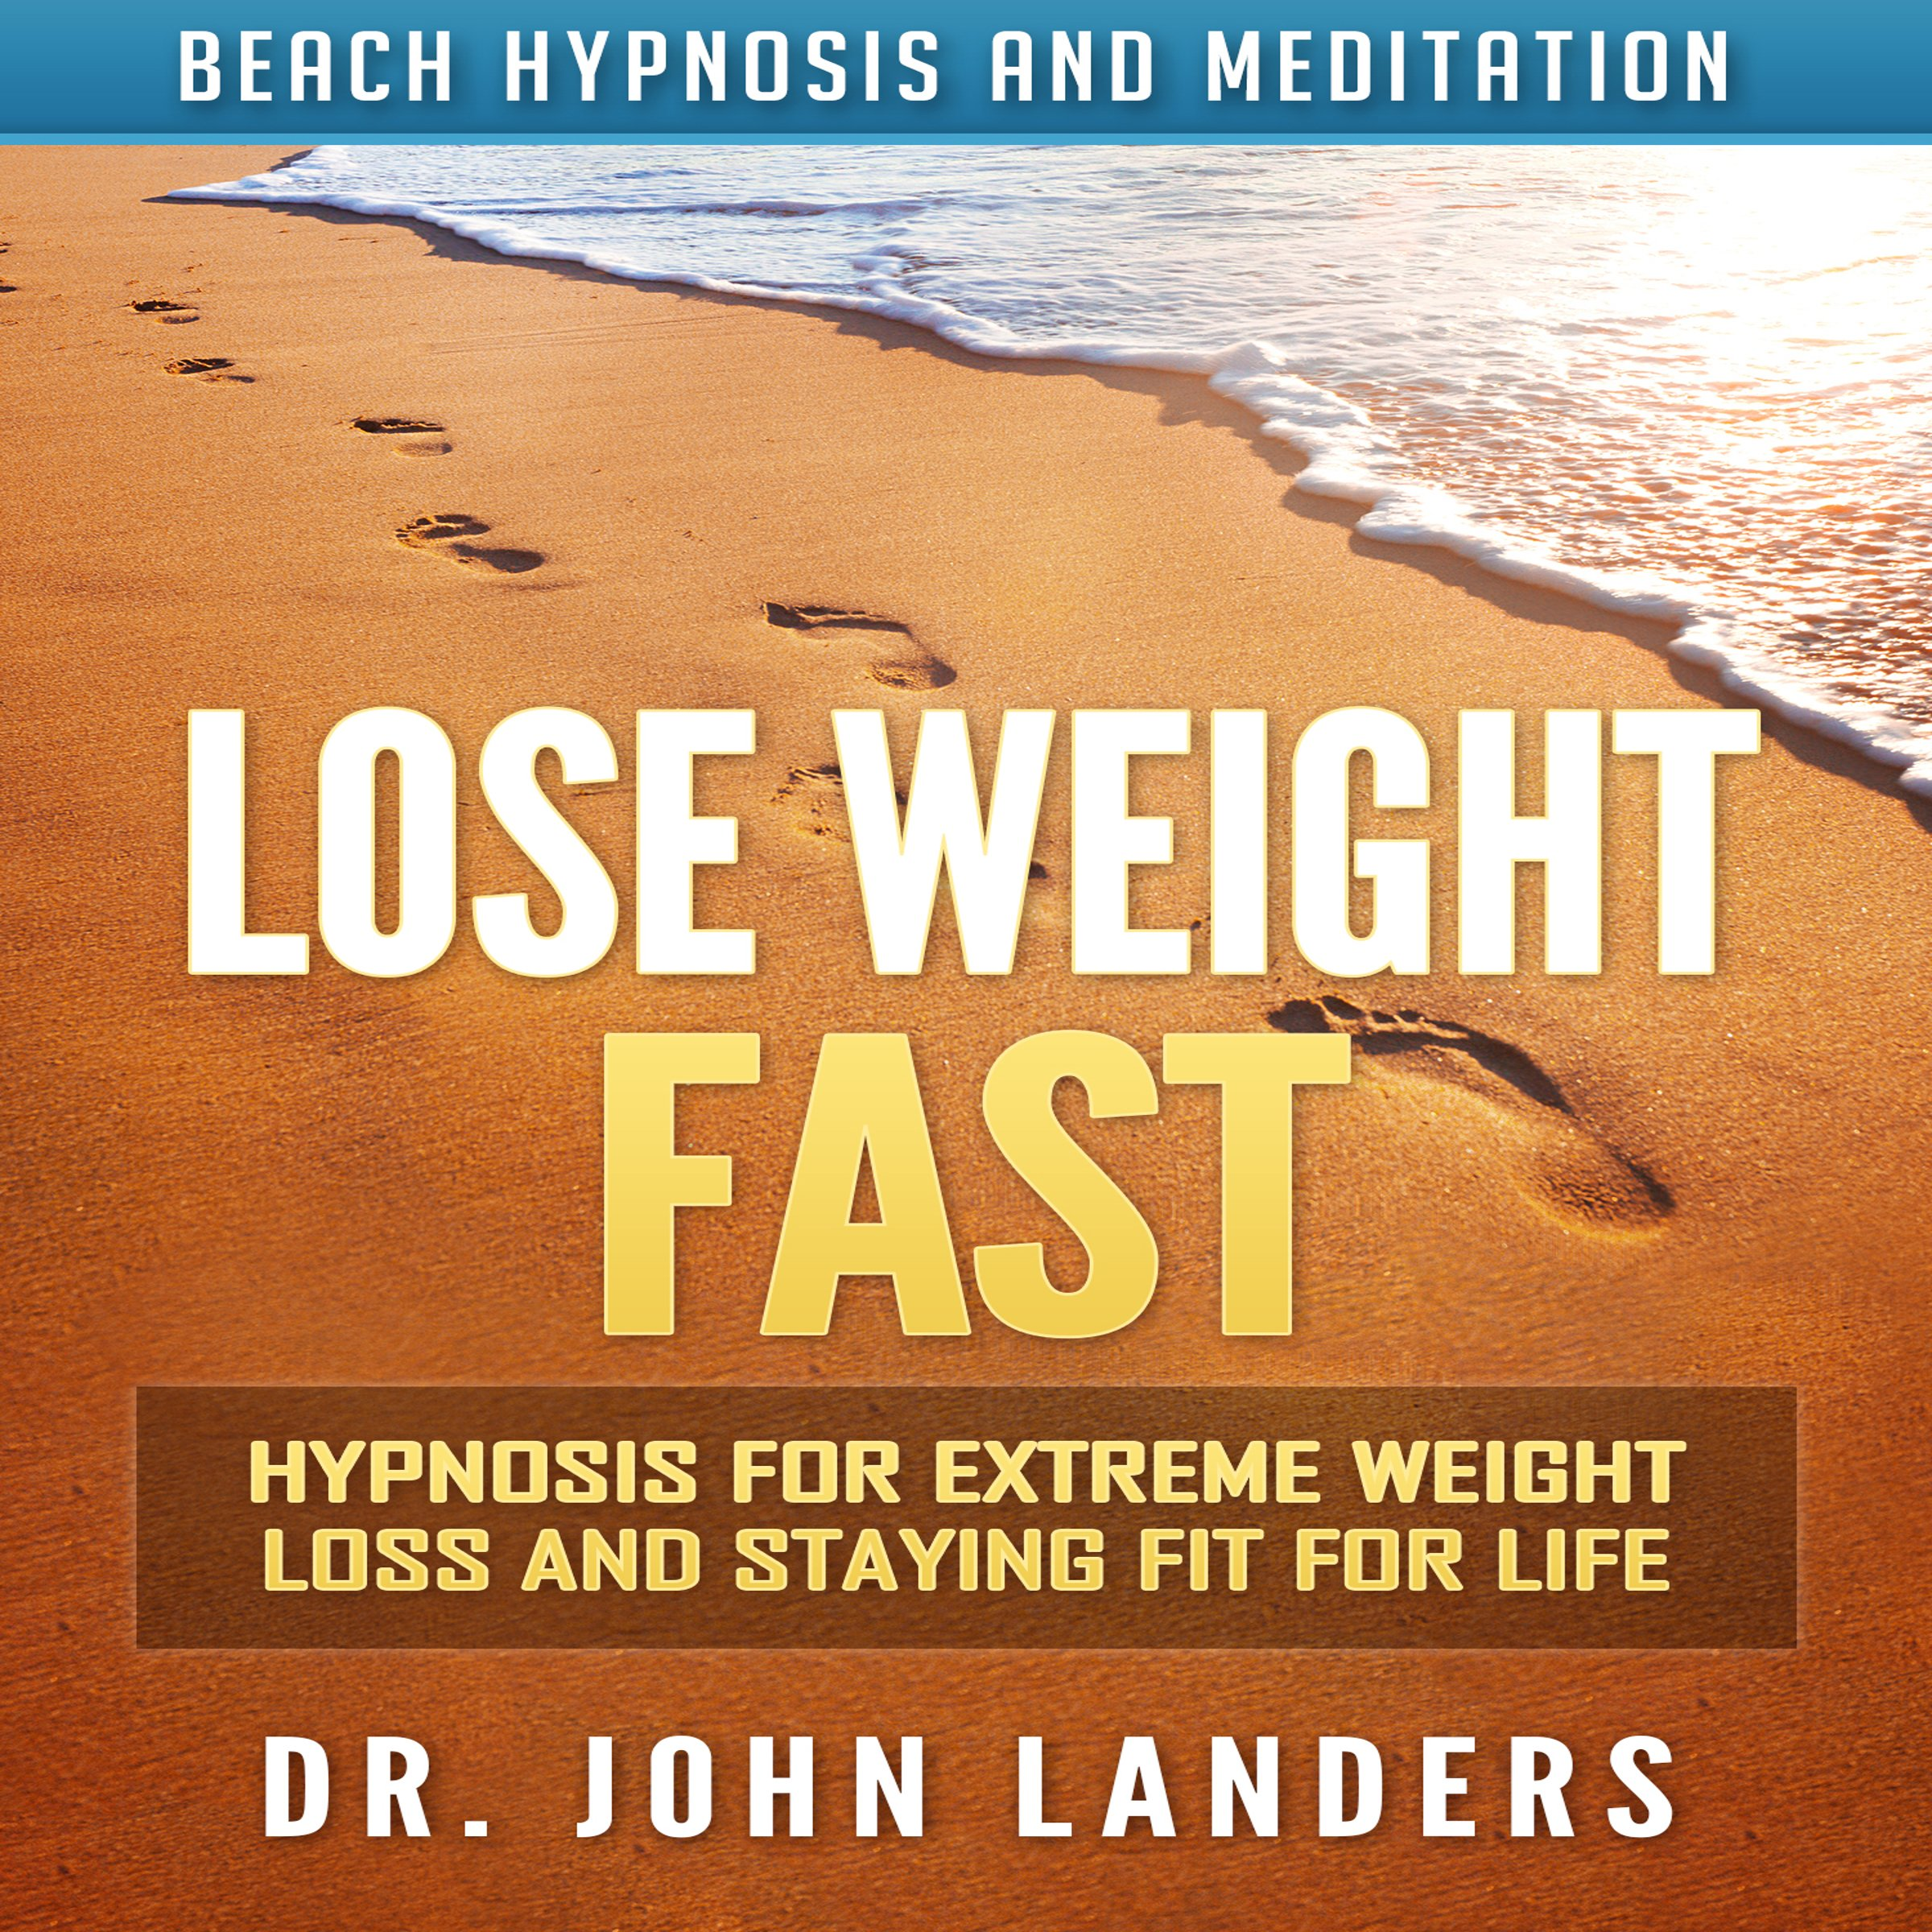 Lose Weight Fast: Hypnosis for Extreme Weight Loss and Staying Fit for Life via Beach Hypnosis and Meditation